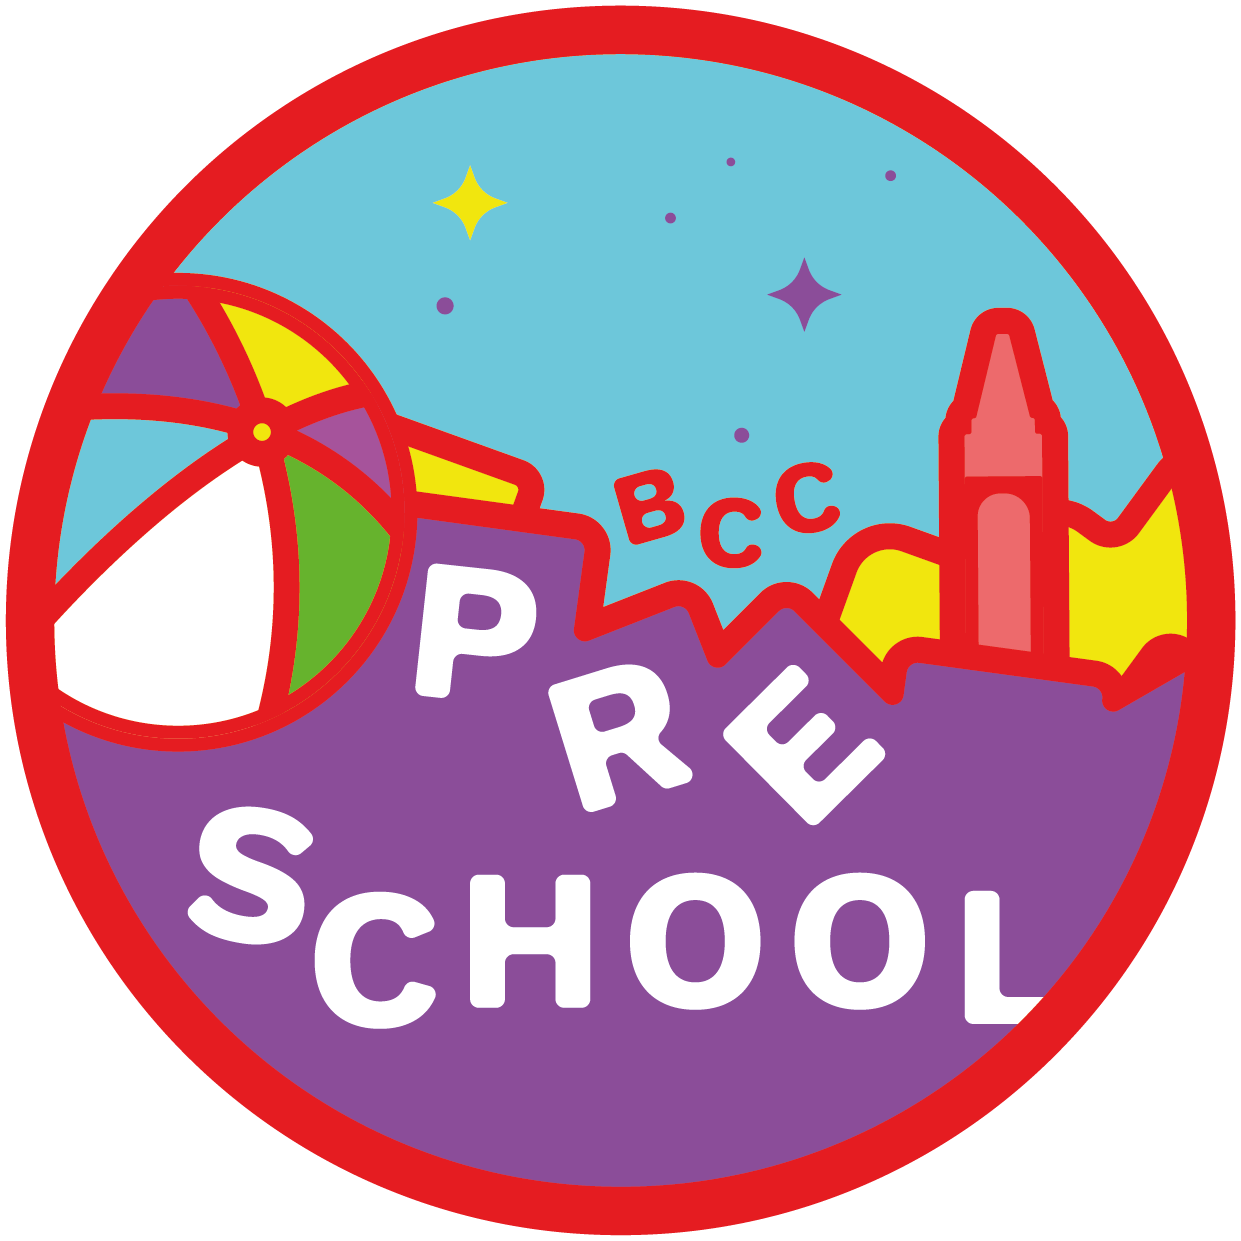 Sparklers - Spirit filled pre-schoolers! One third of our Sunday Children's Church groups, packed full of our own worship, Bible teaching, curious crafts, fun and games.CHINE, LIFE.CENTRE Sun. 11.00am.